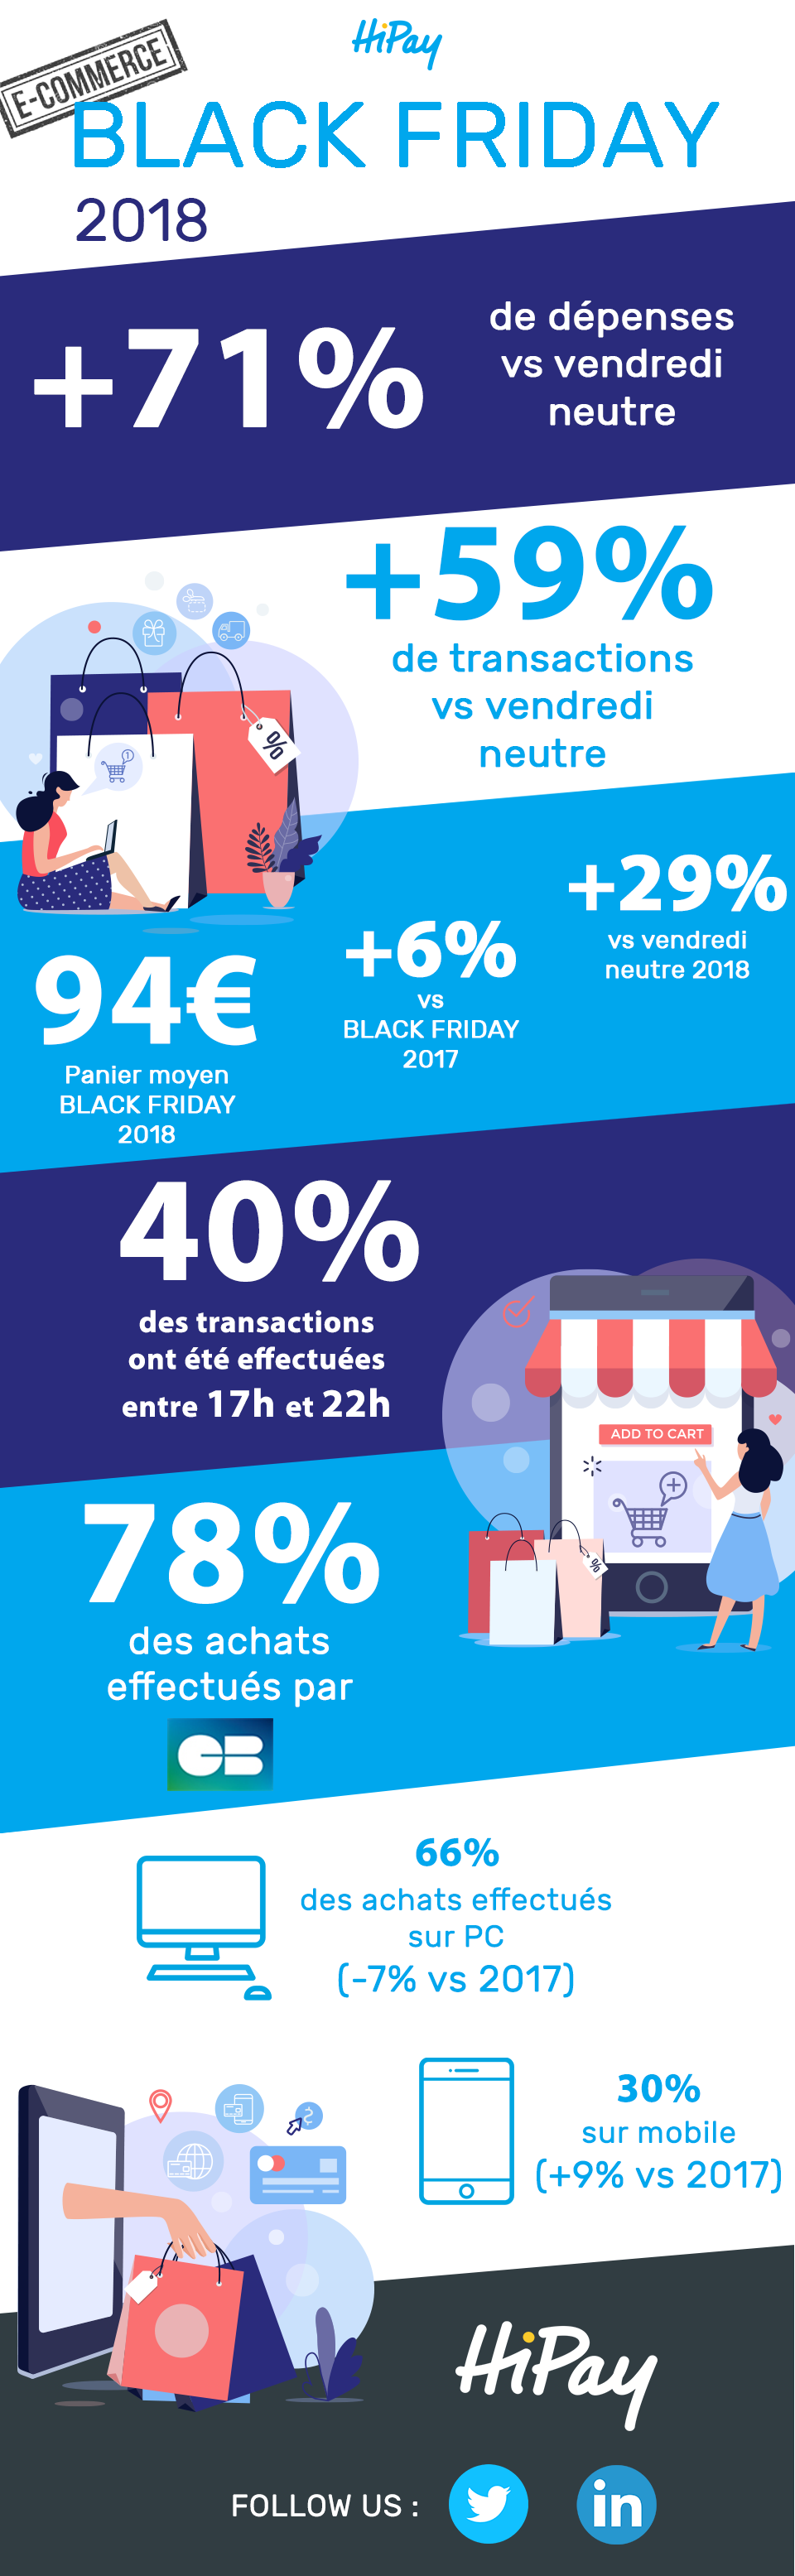 infographie black friday 2018